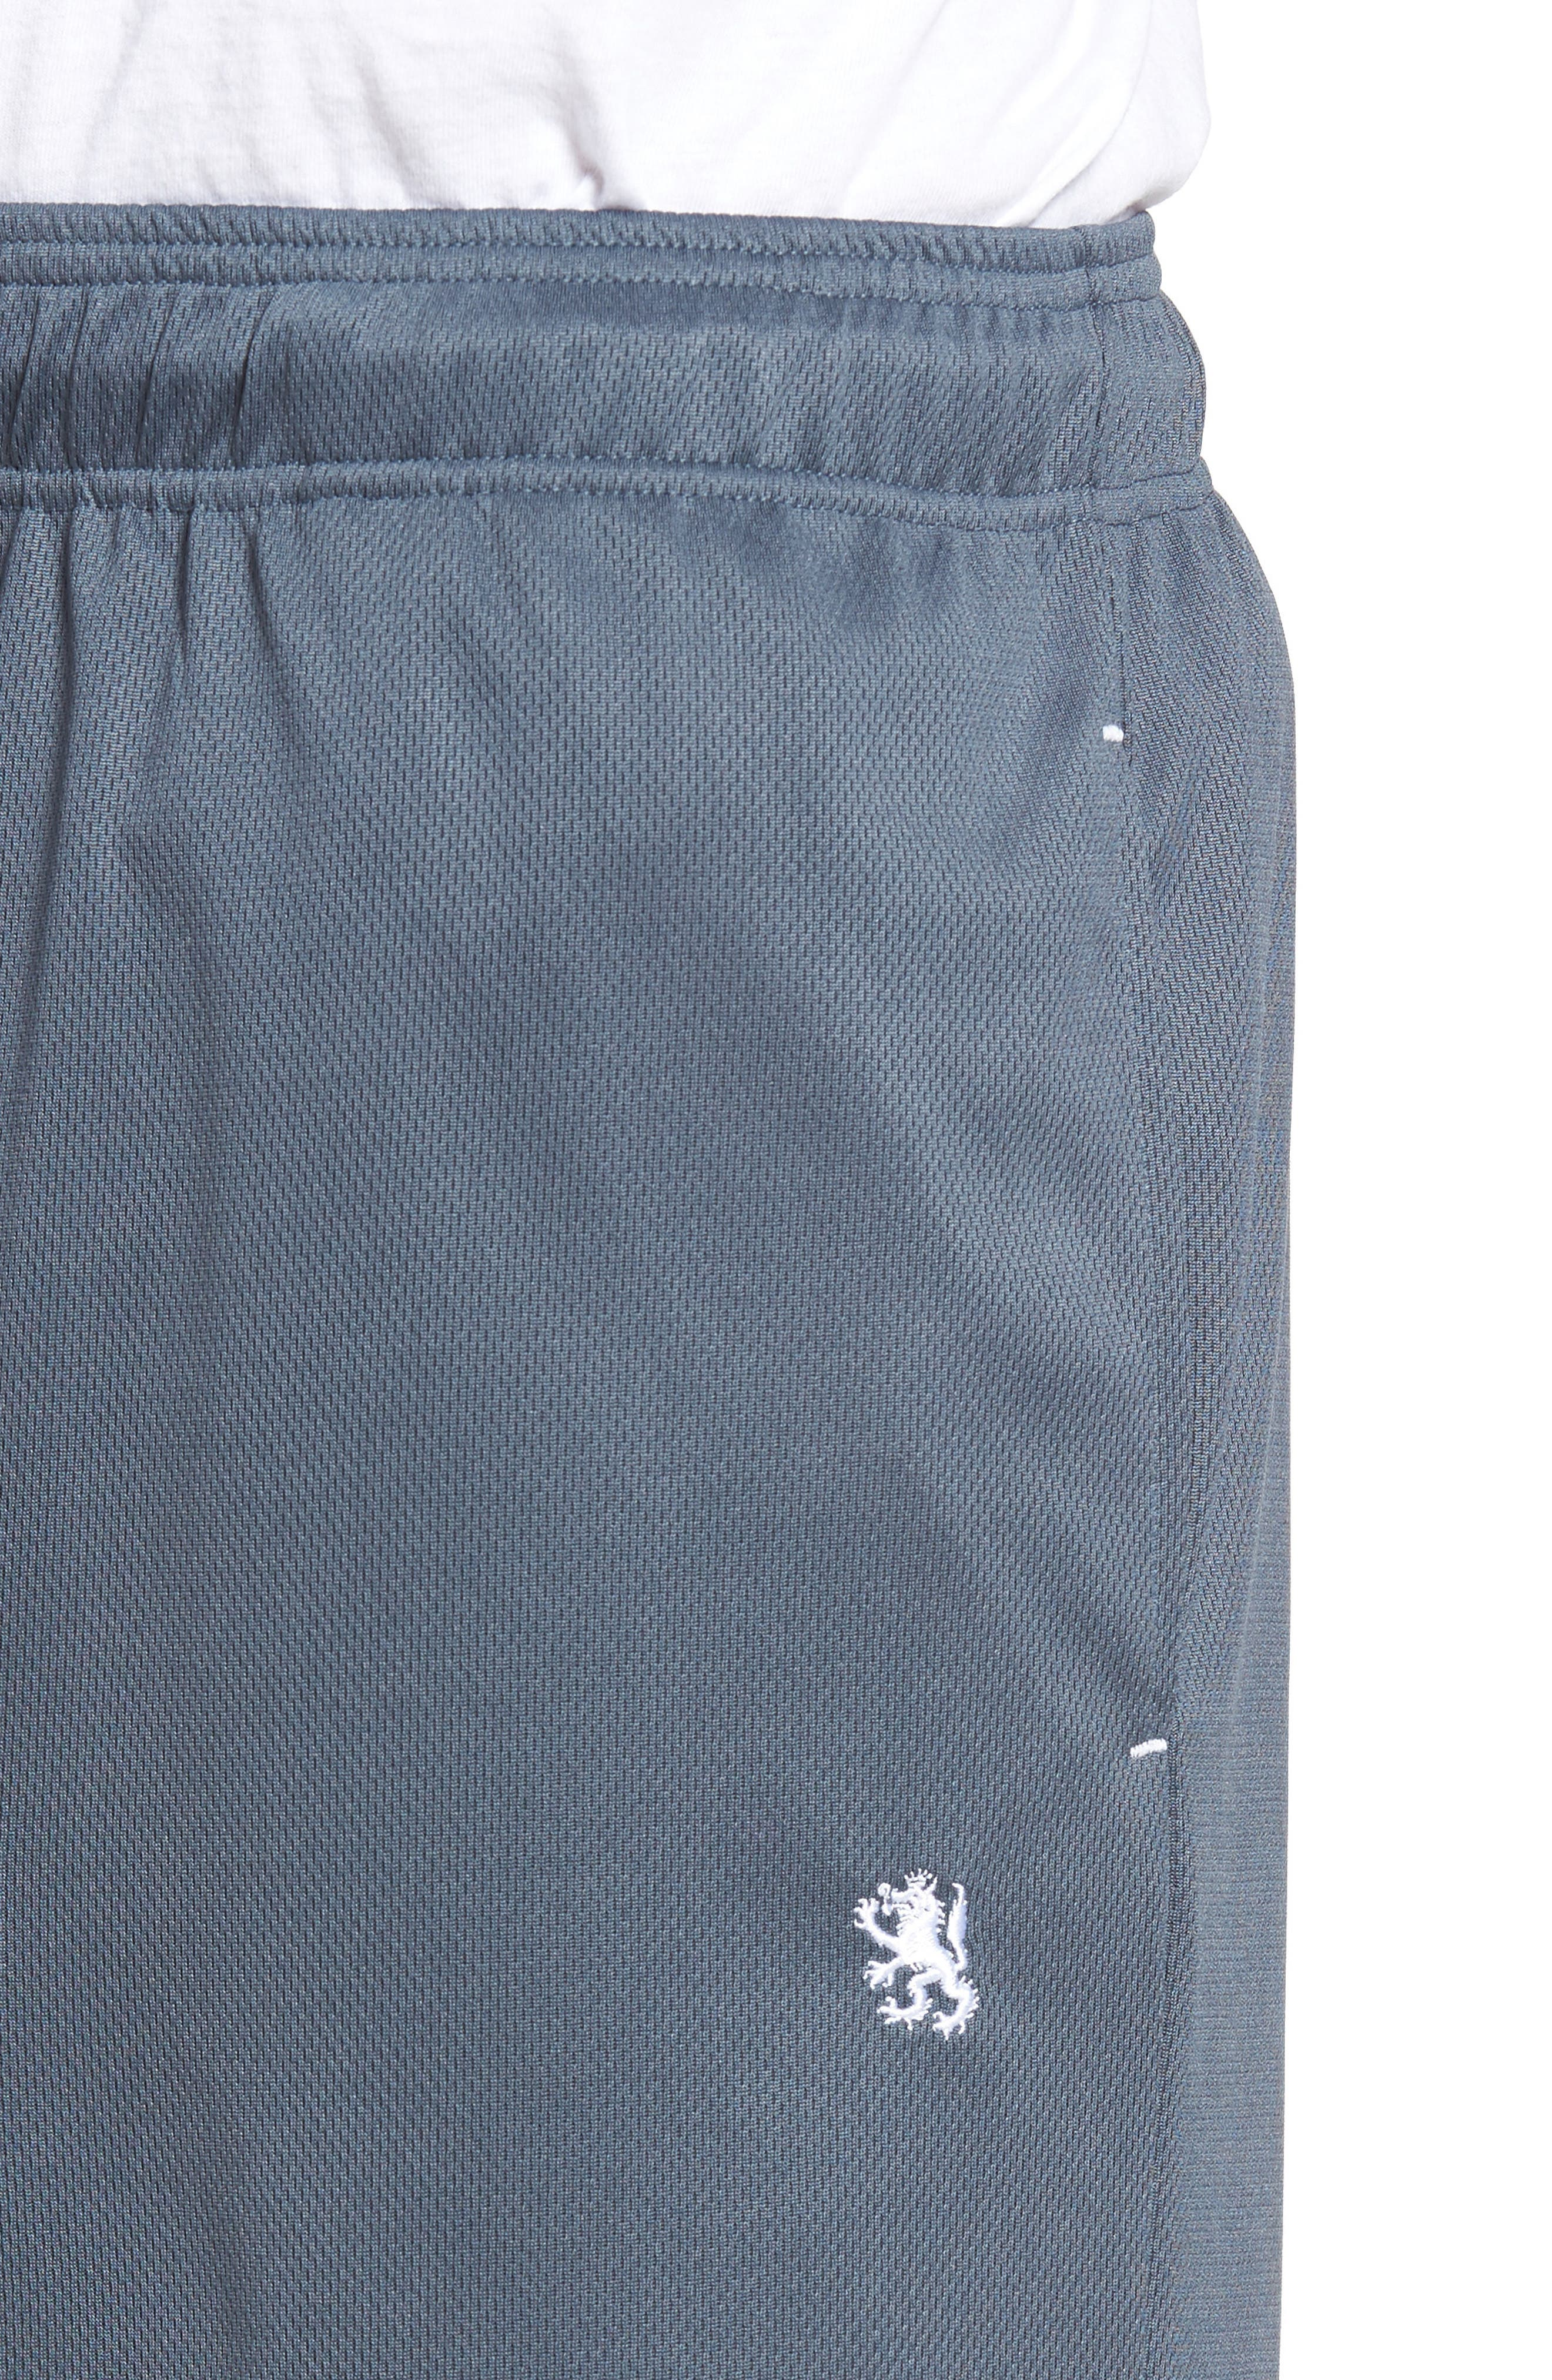 Work Out Lounge Shorts,                             Alternate thumbnail 11, color,